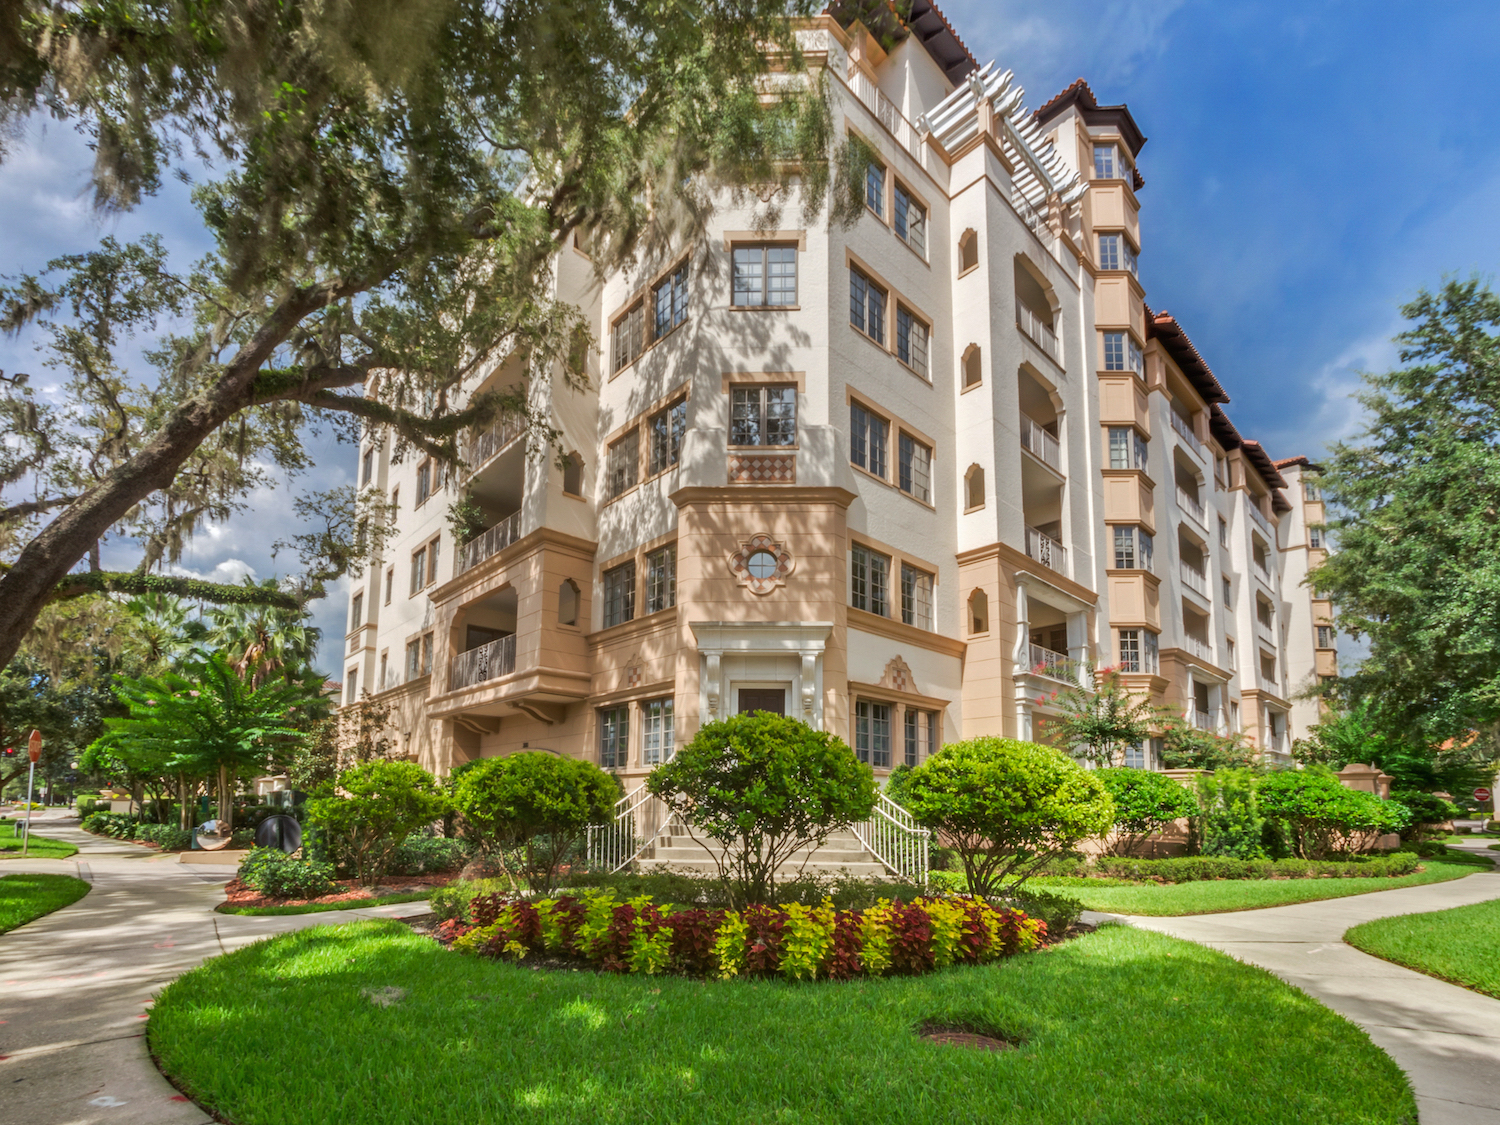 The Residences, 300 S Interlachen Avenue in Winter Park, Fla.